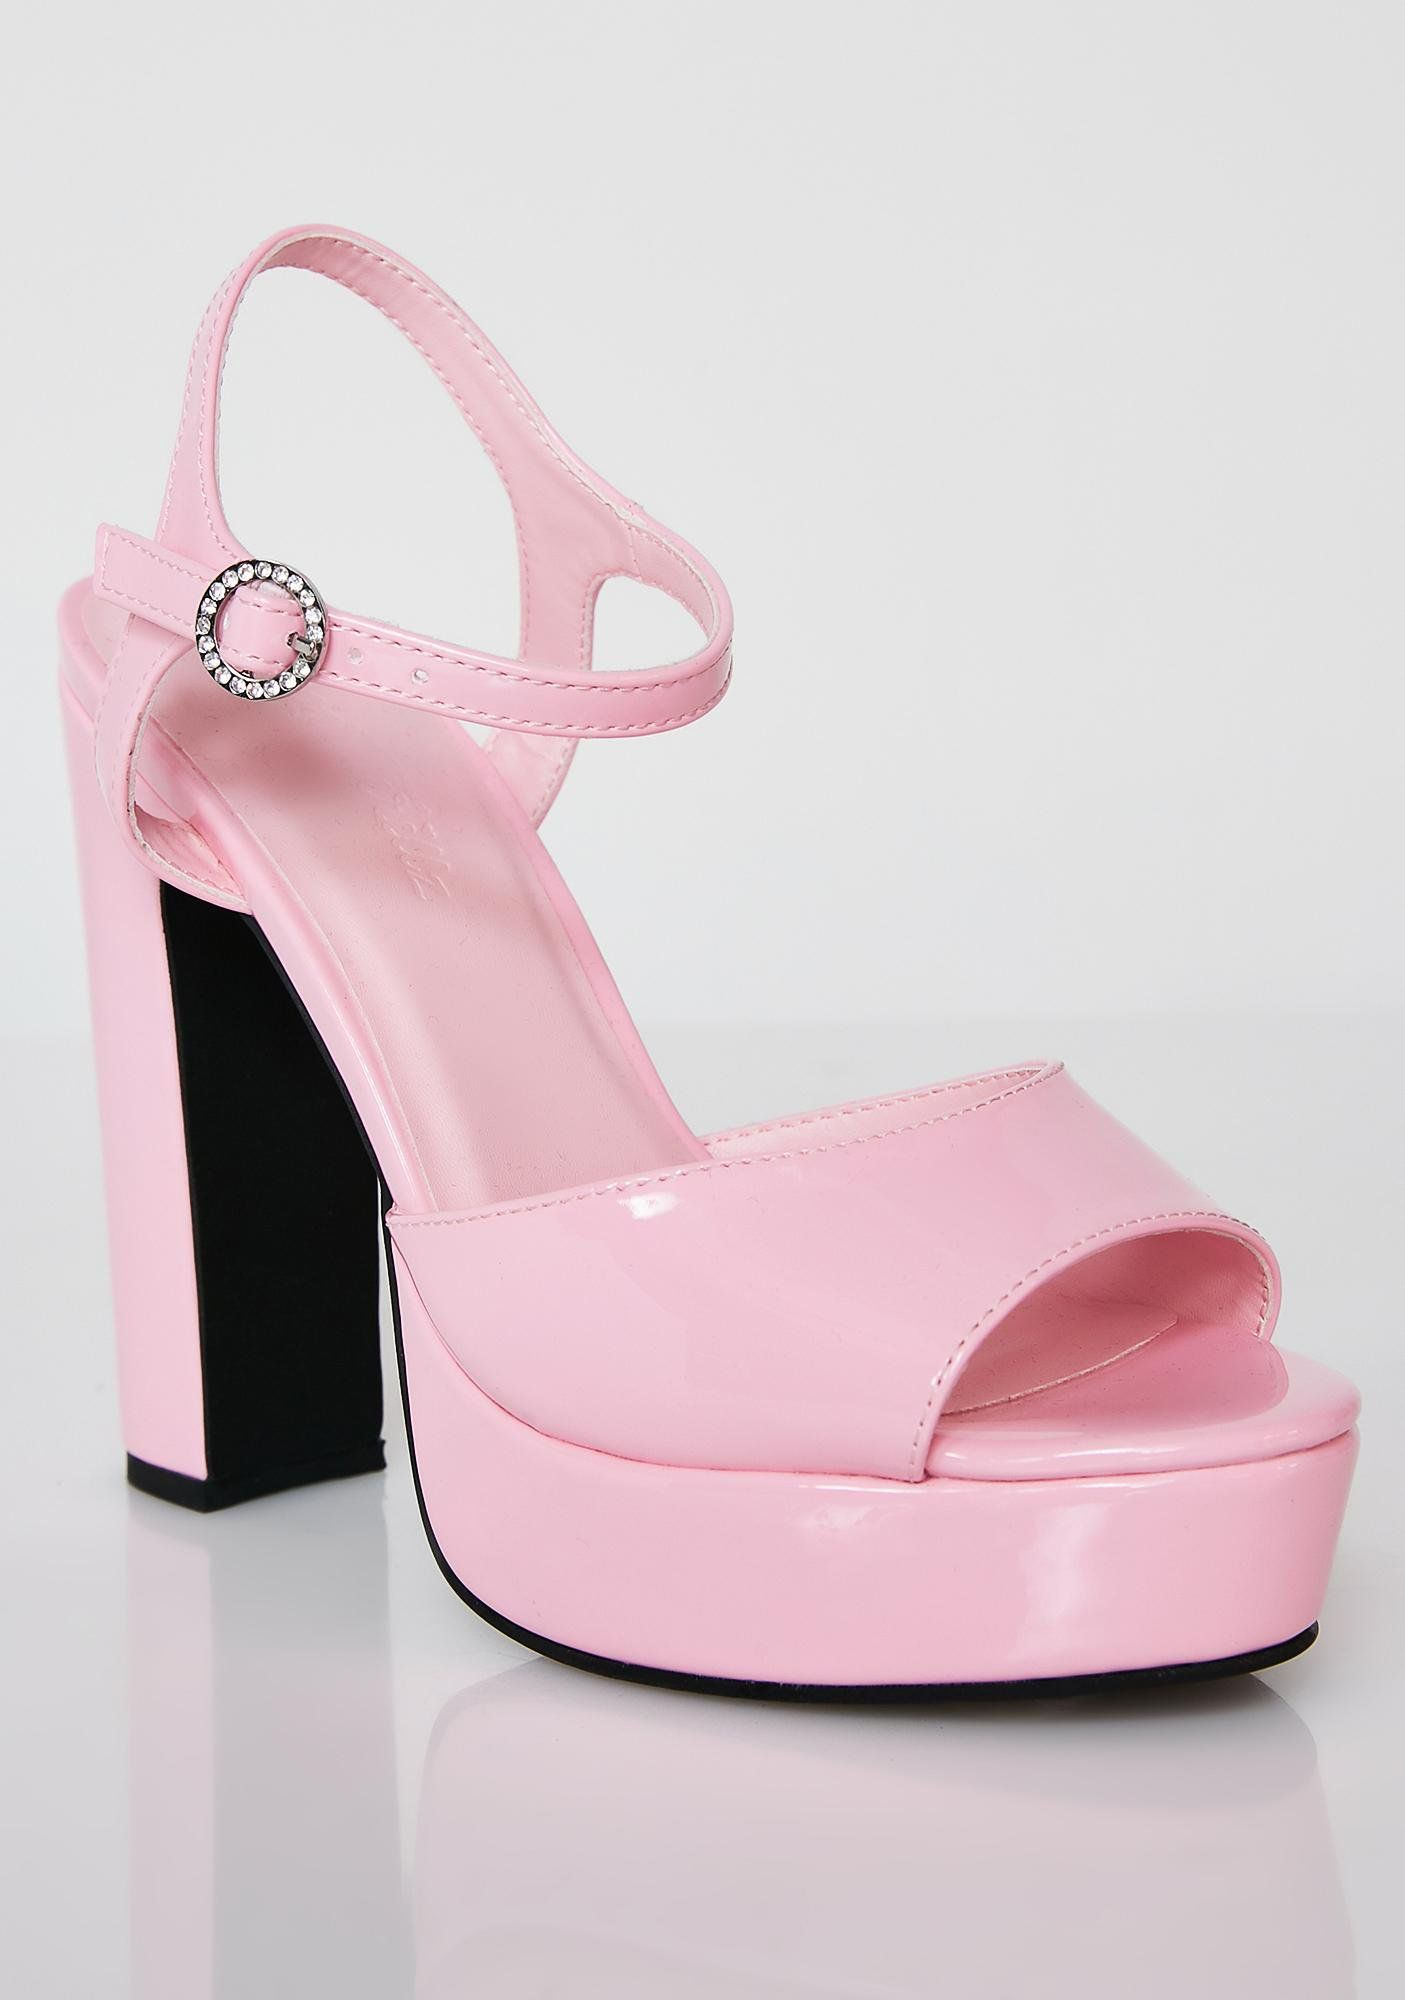 9176beb39b25 Sugar Thrillz Pretty Princess Platform Heels